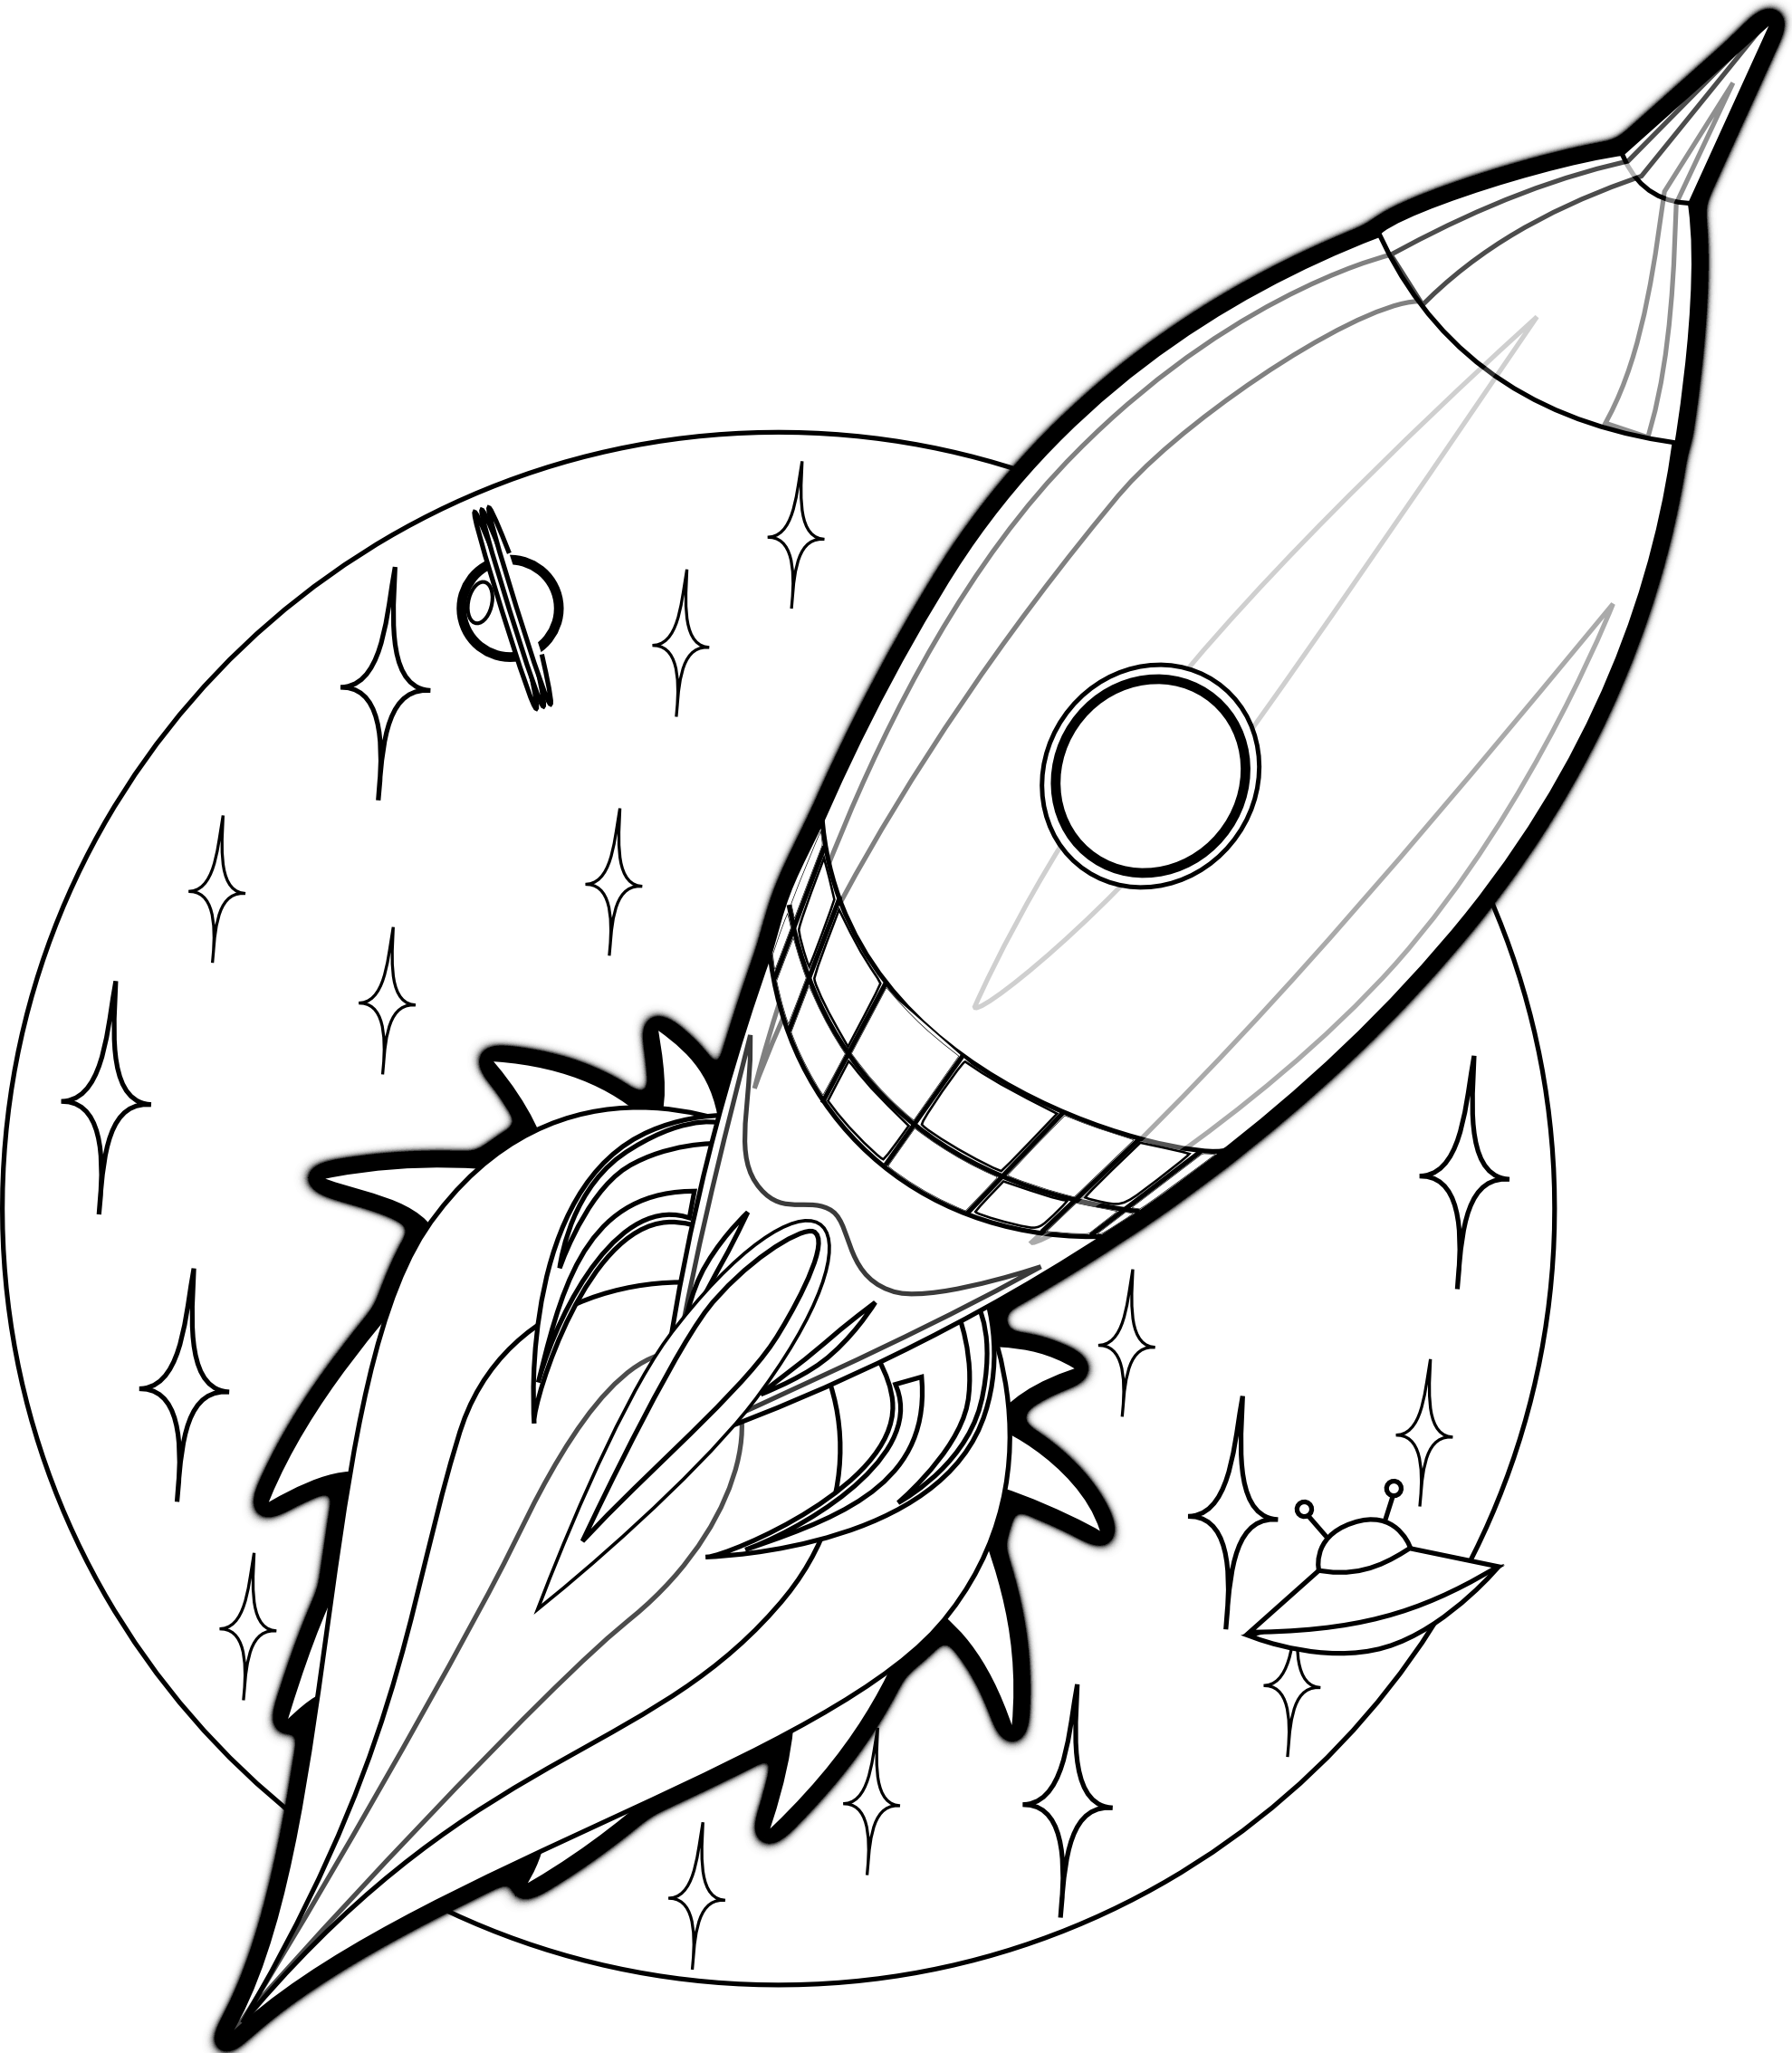 Remarkable image within rocket ship printable